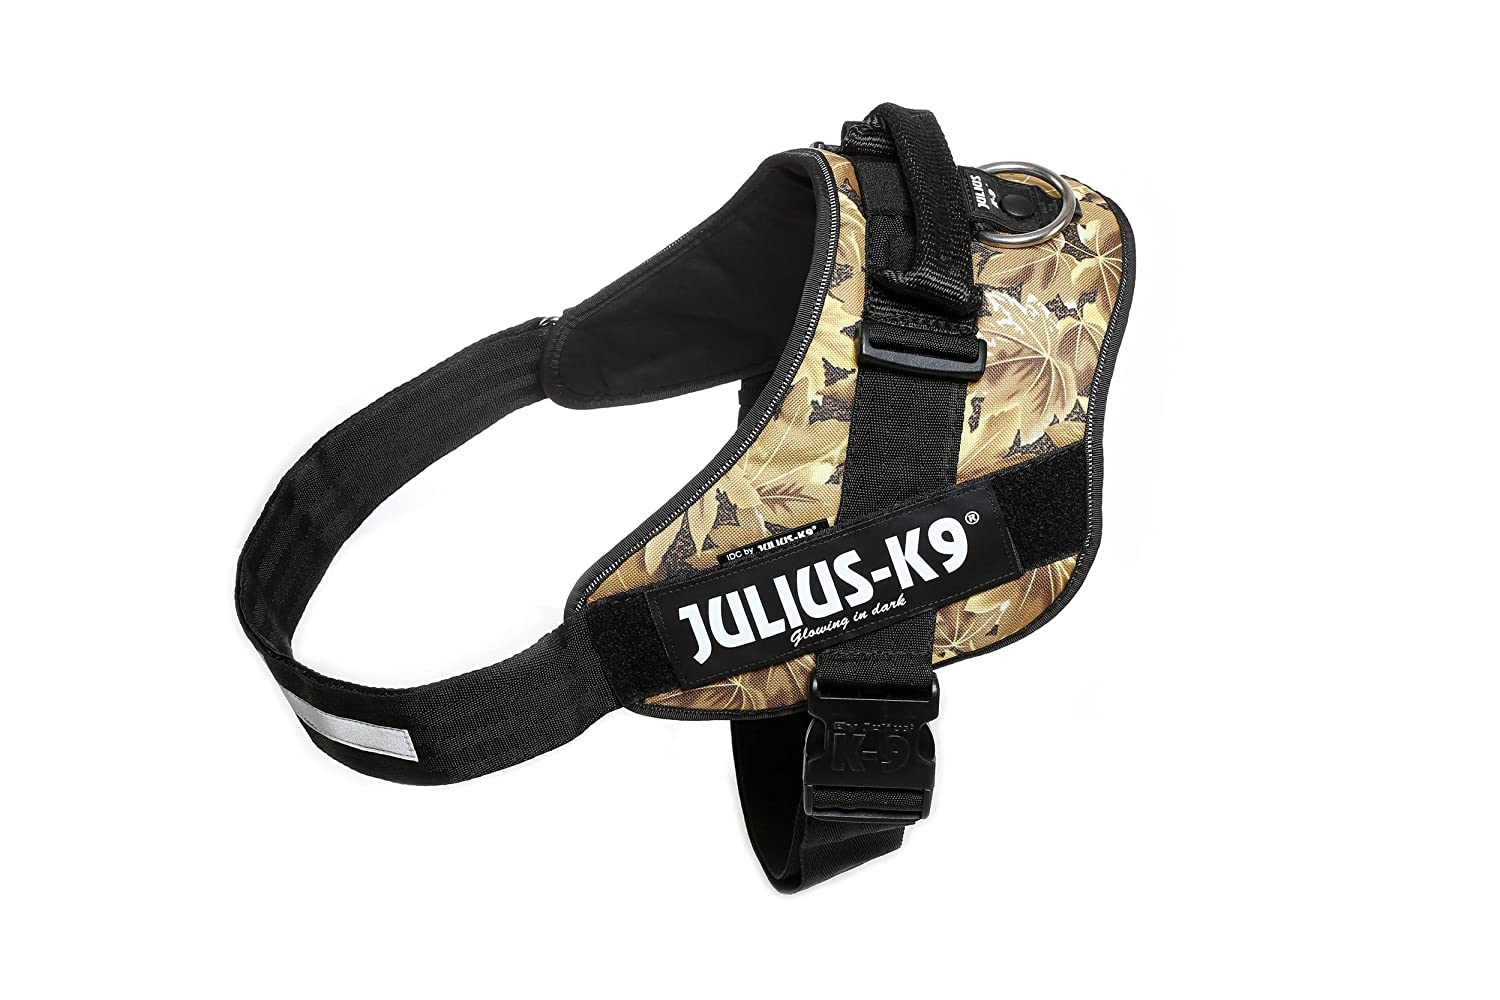 Julius-K9 16IDC-SIL-MM IDC - Arnés para Perro: Amazon.es ...